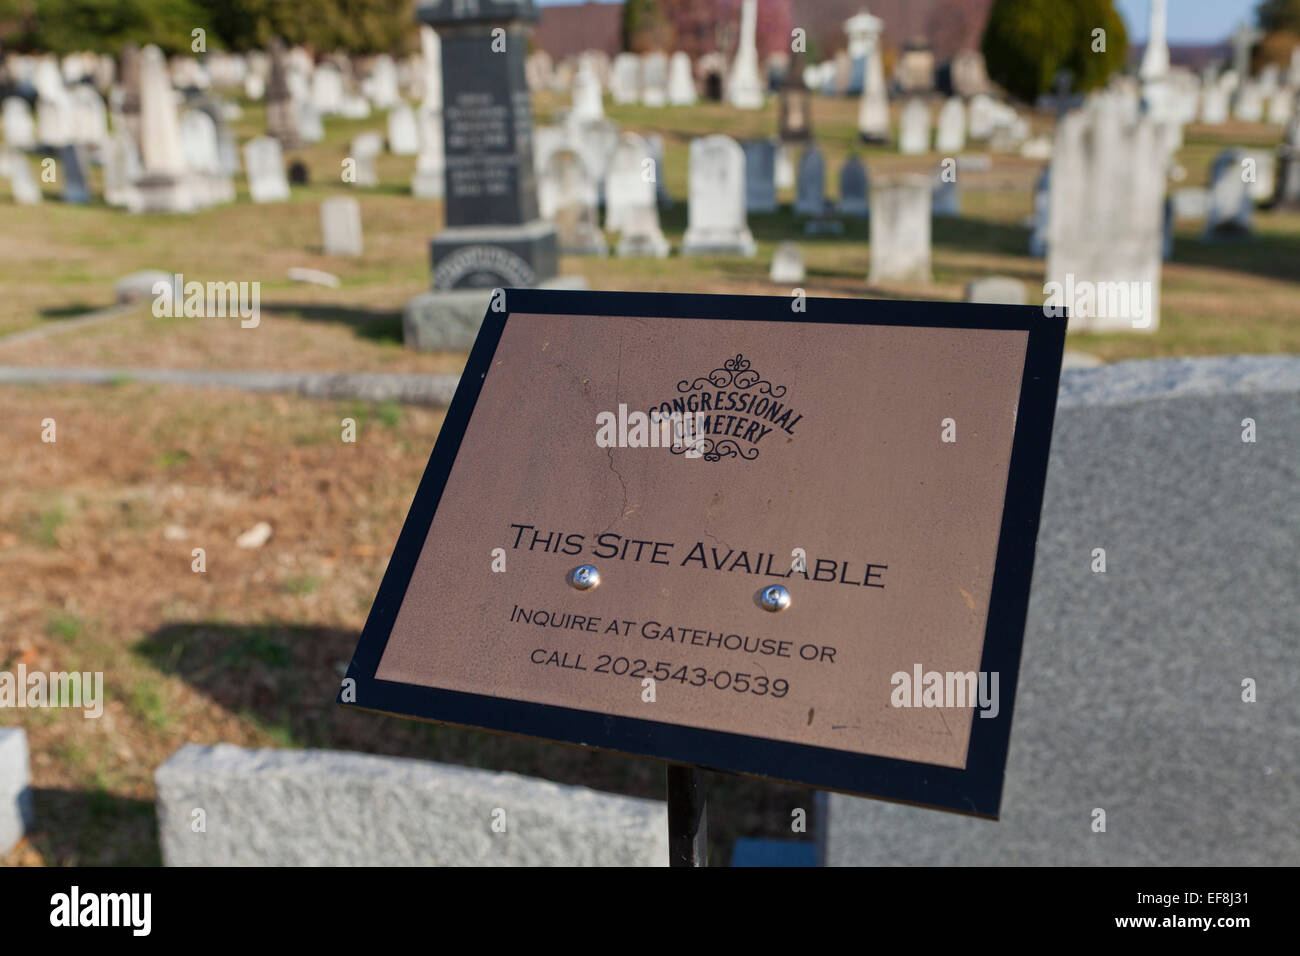 Gravesite available sign at cemetery - Congressional Cemetery, Washington, DC USA - Stock Image